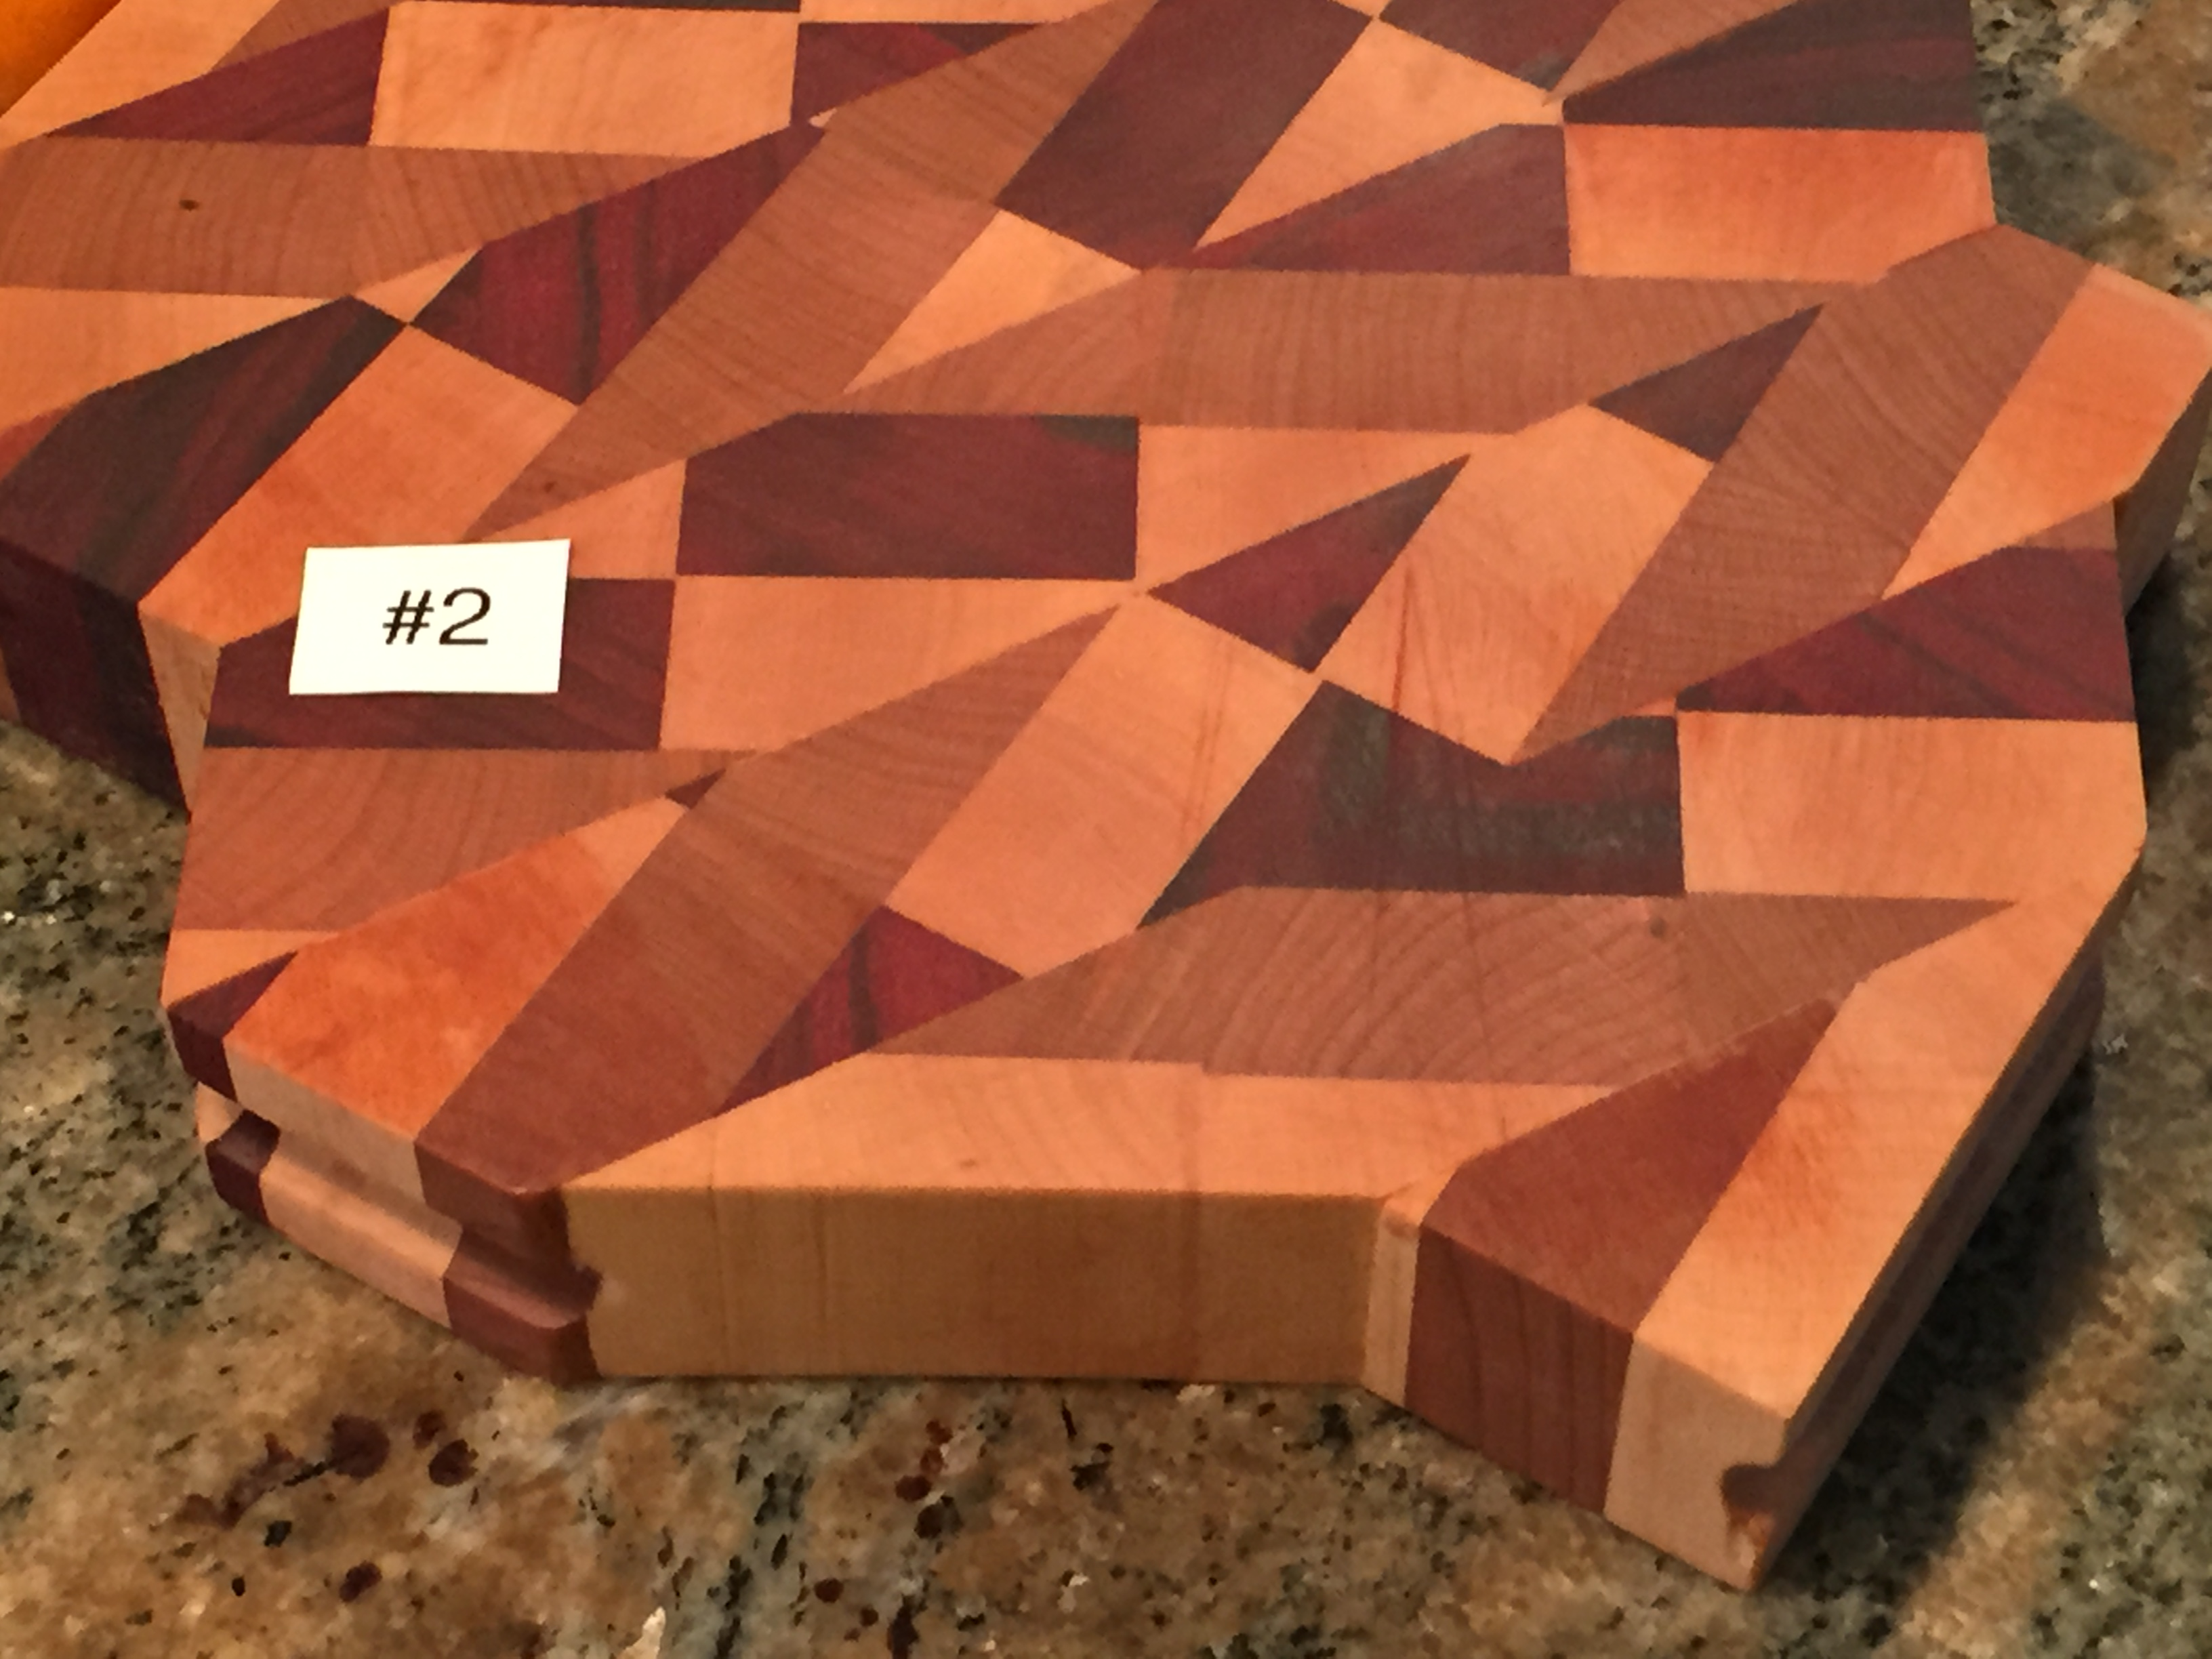 Freeform Shape serving/cutting board